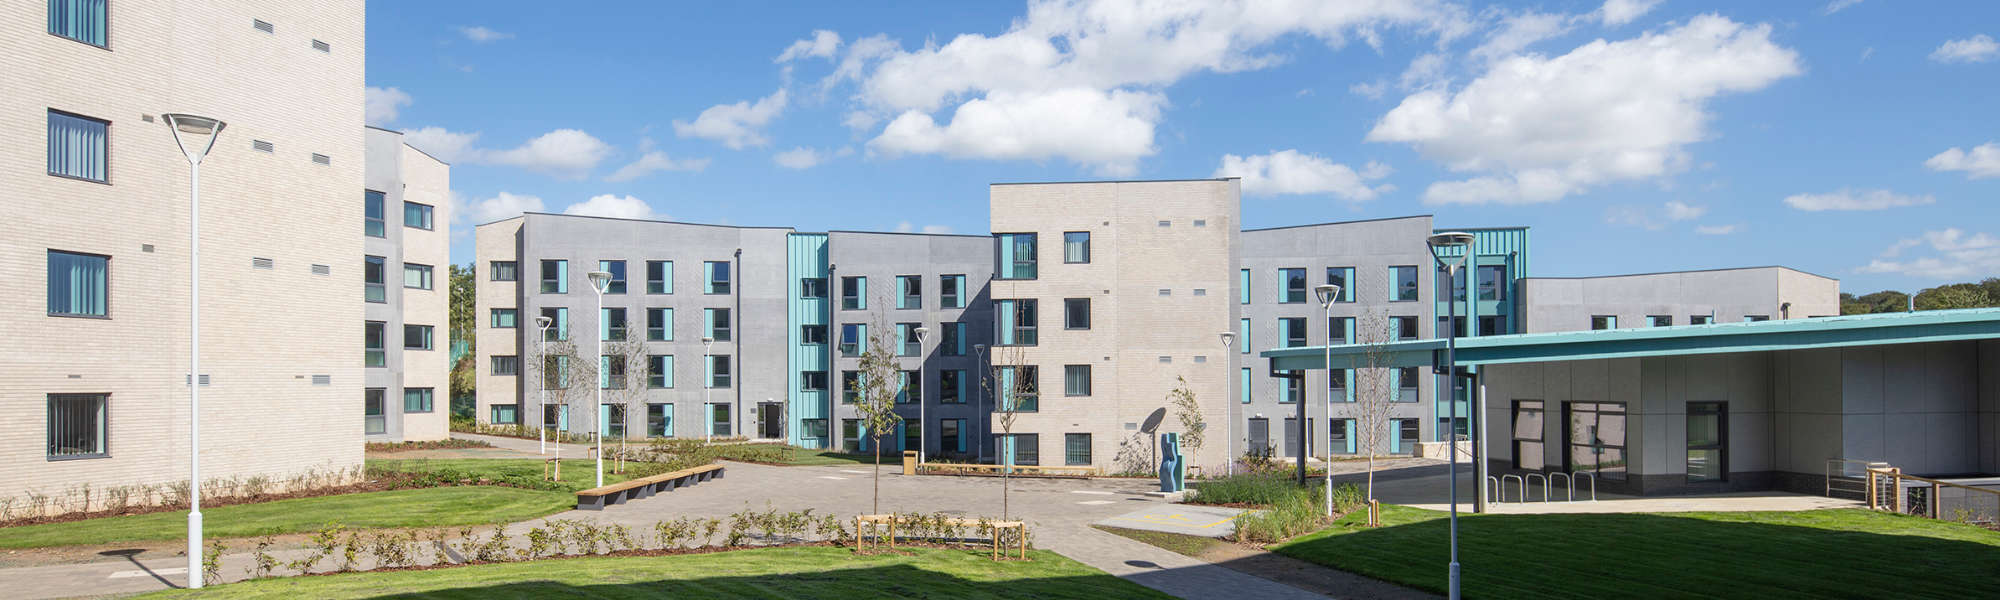 PCE worked closely with Interserve Construction and Wilmore Isles Architects